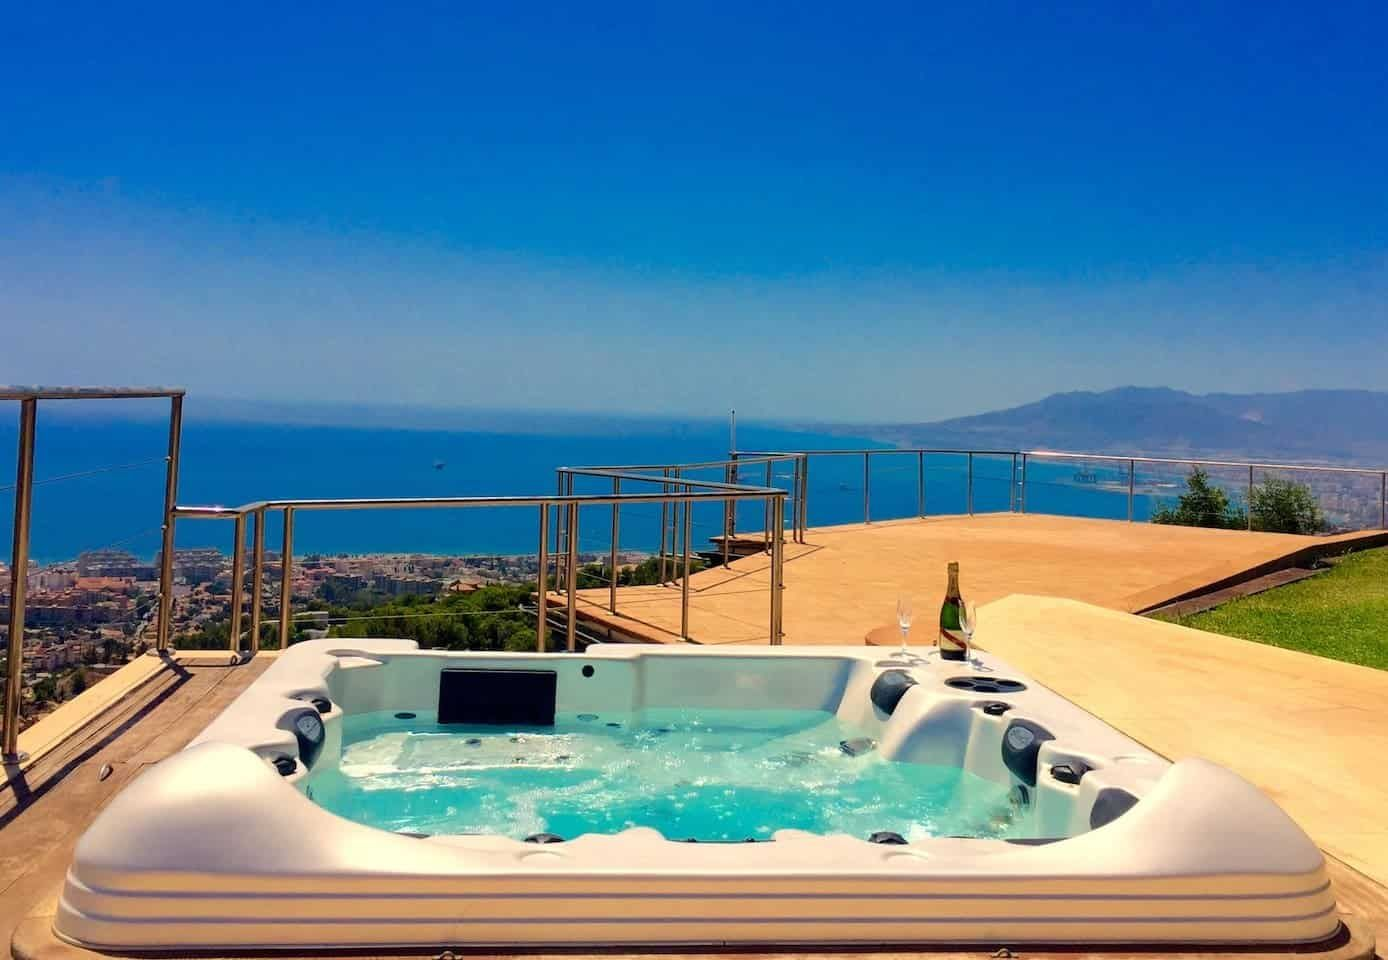 15 Best Malaga Airbnb Apartment Rentals In Spain Budget Lux Itsallbee Solo Travel Adventure Tips Rental Apartments Malaga Airbnb Rentals